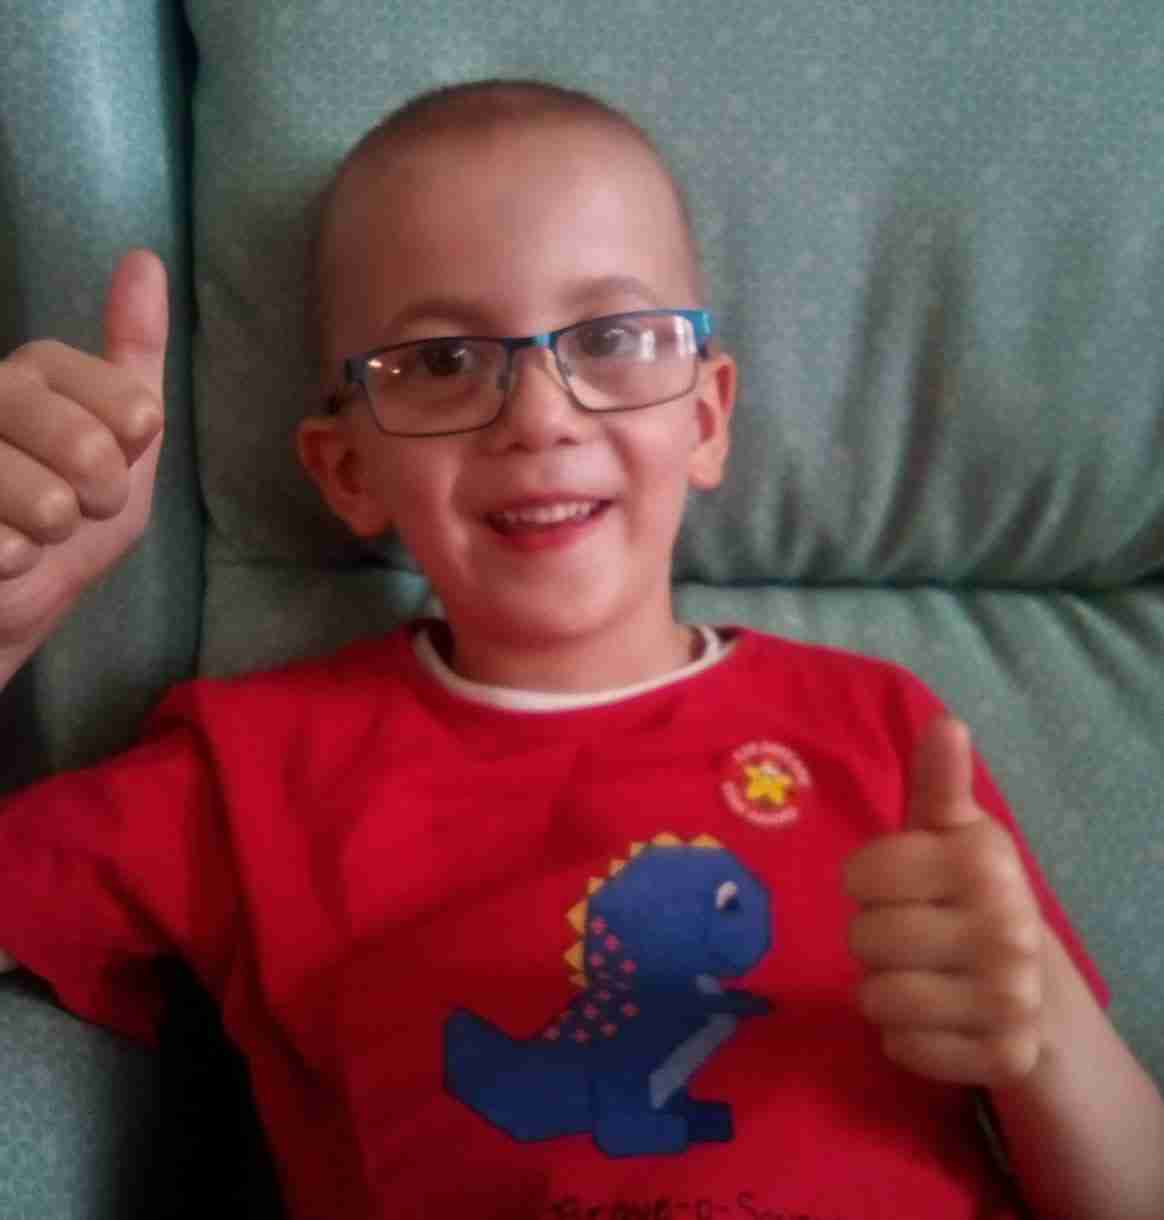 Evan with his thumbs up